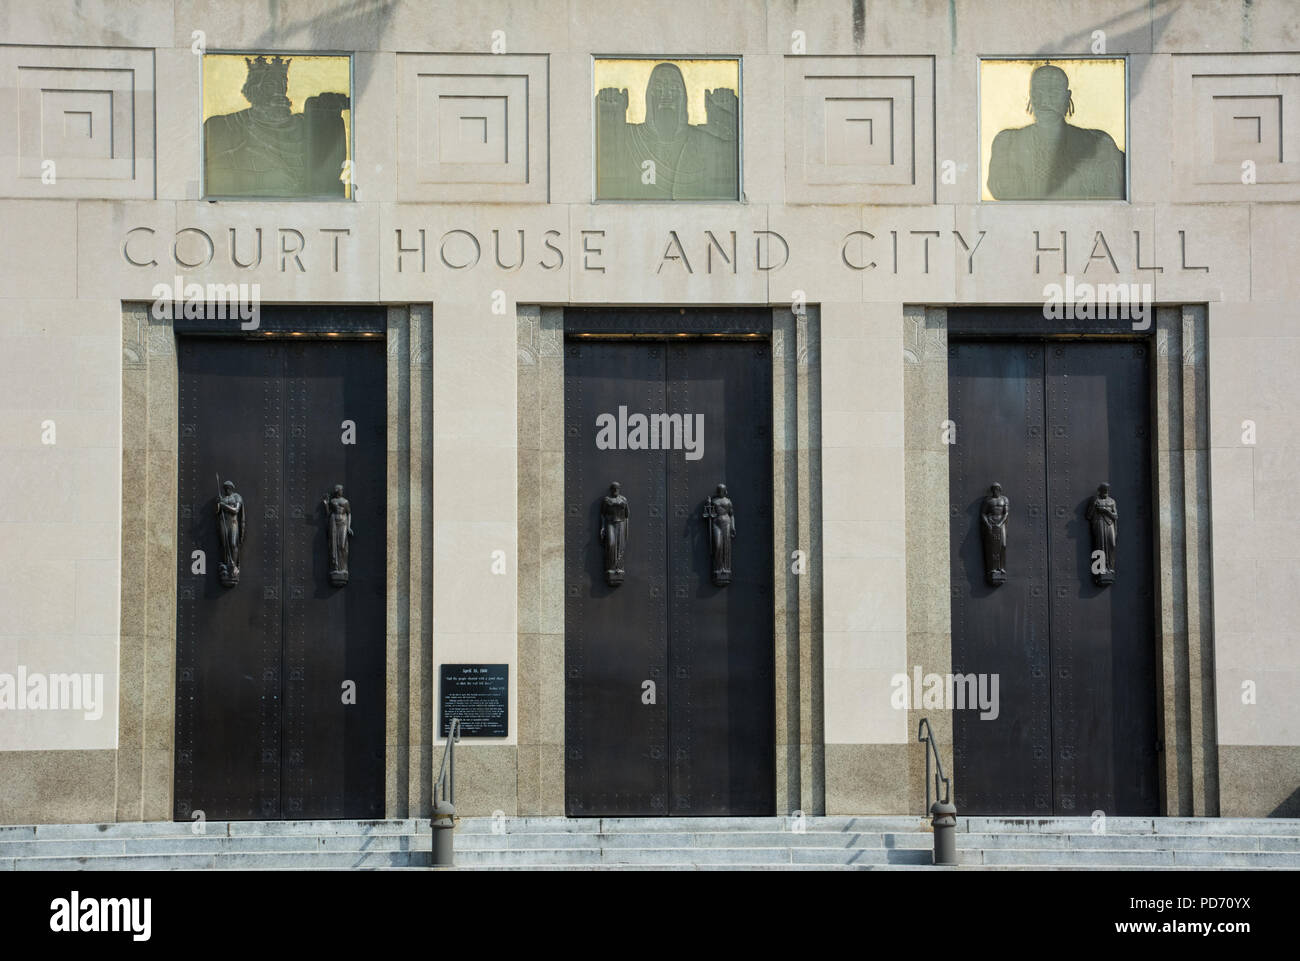 The entry doors to the Davidson County Courthouse, also known as the Metropolitan Courthouse in Nashville, Tennessee, USA Stock Photo